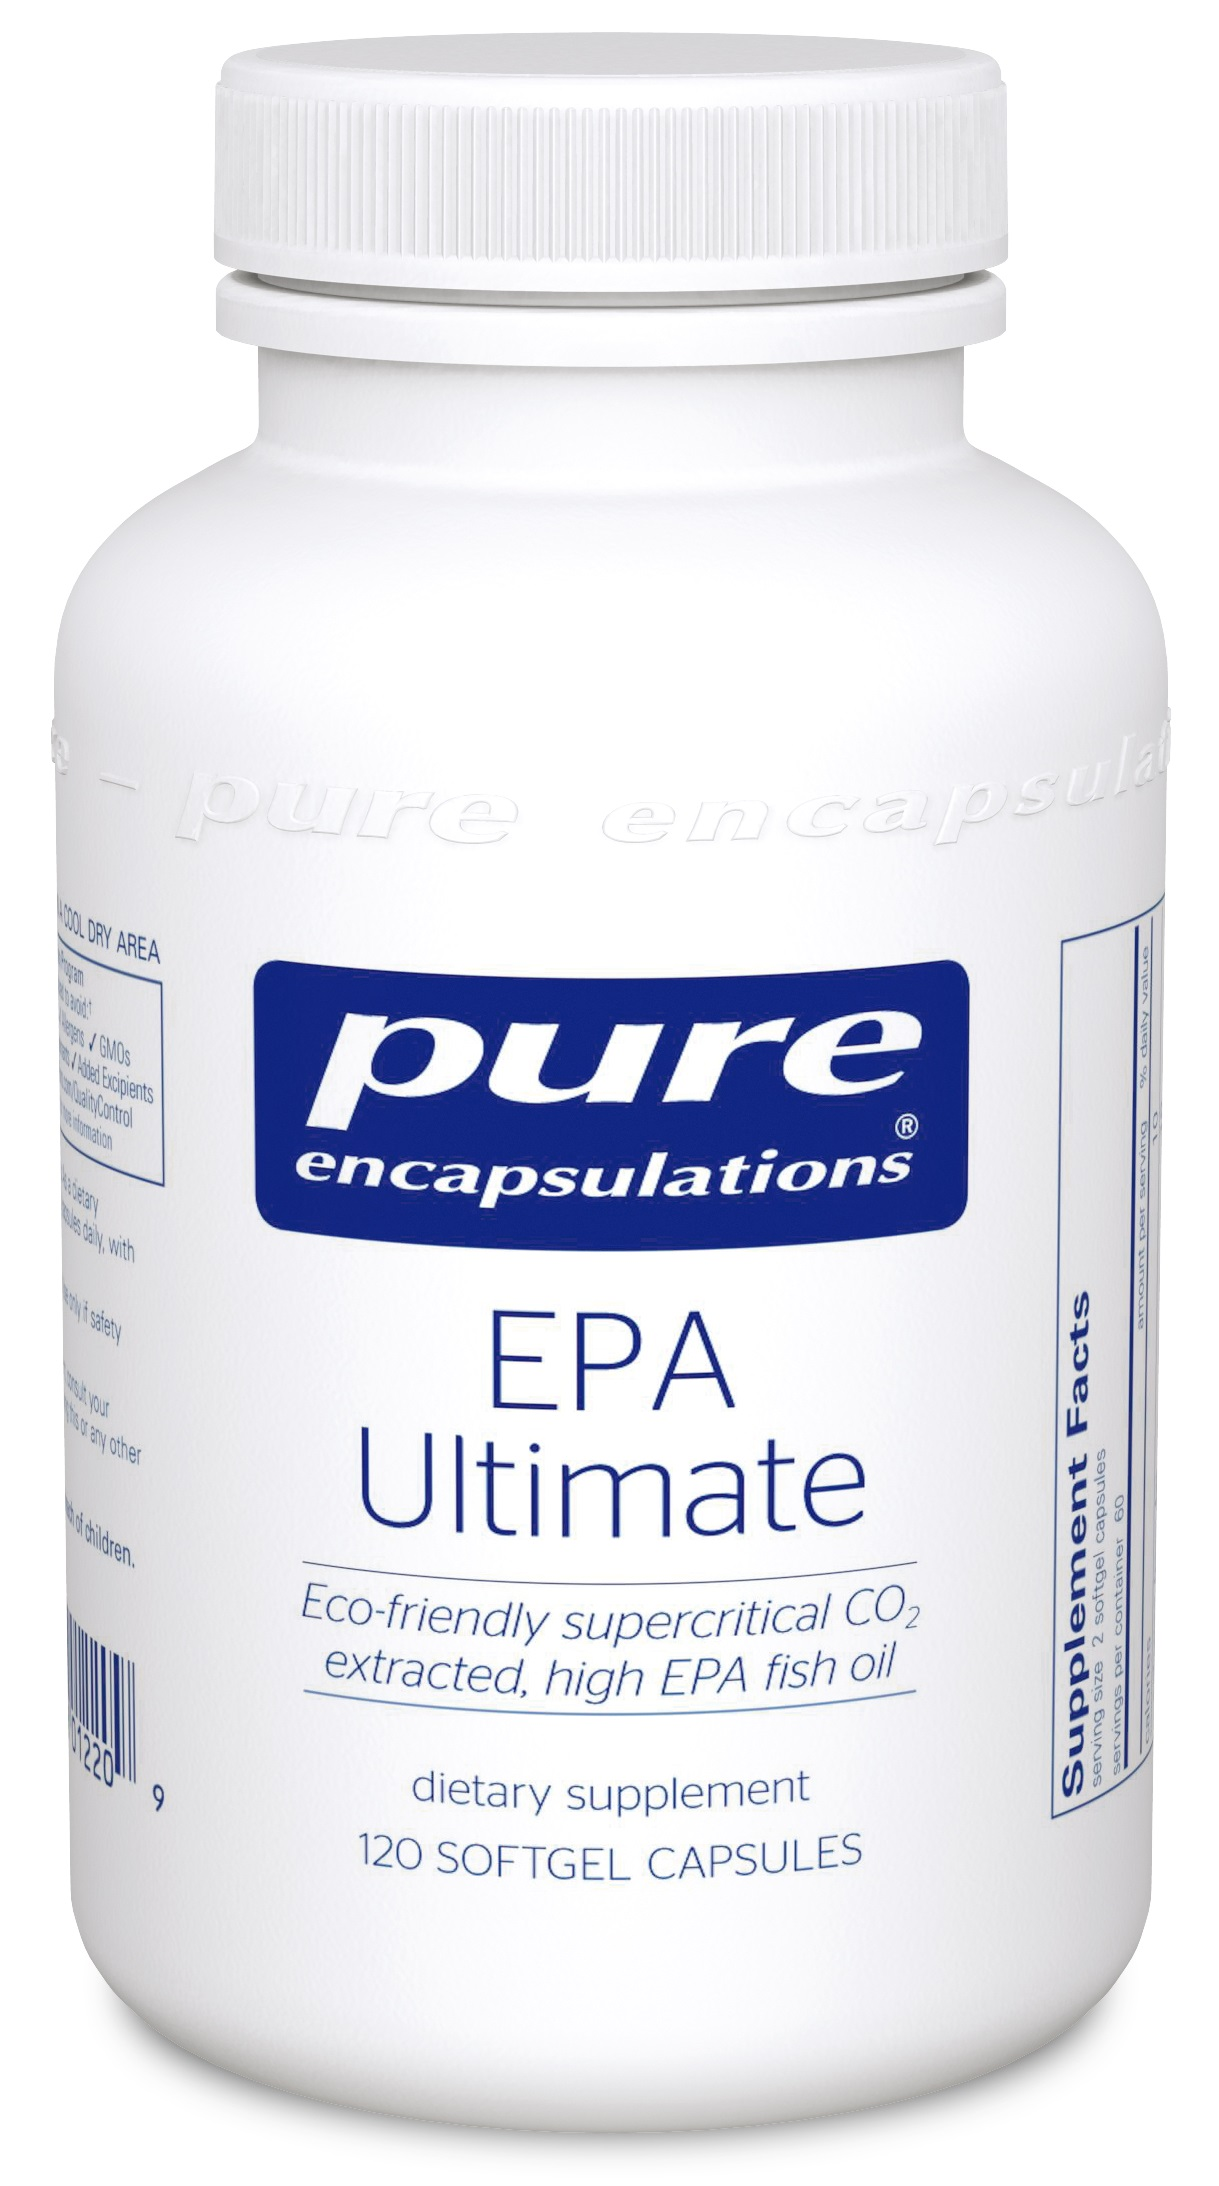 Pure Encapsulations EPA Ultimate